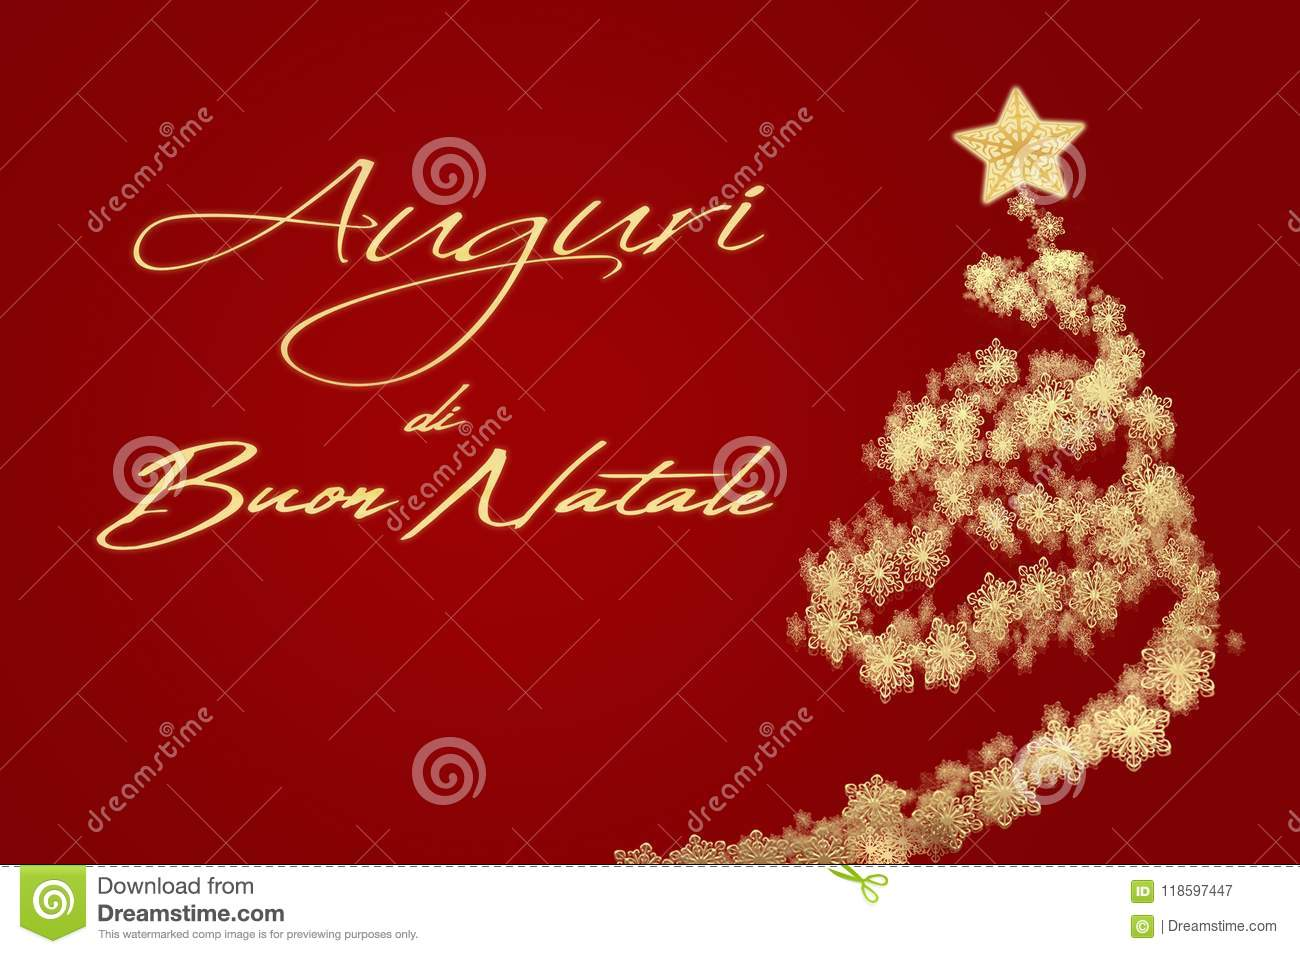 Merry Christmas In Italian.Merry Christmas Card With Greeting In Italian Stock